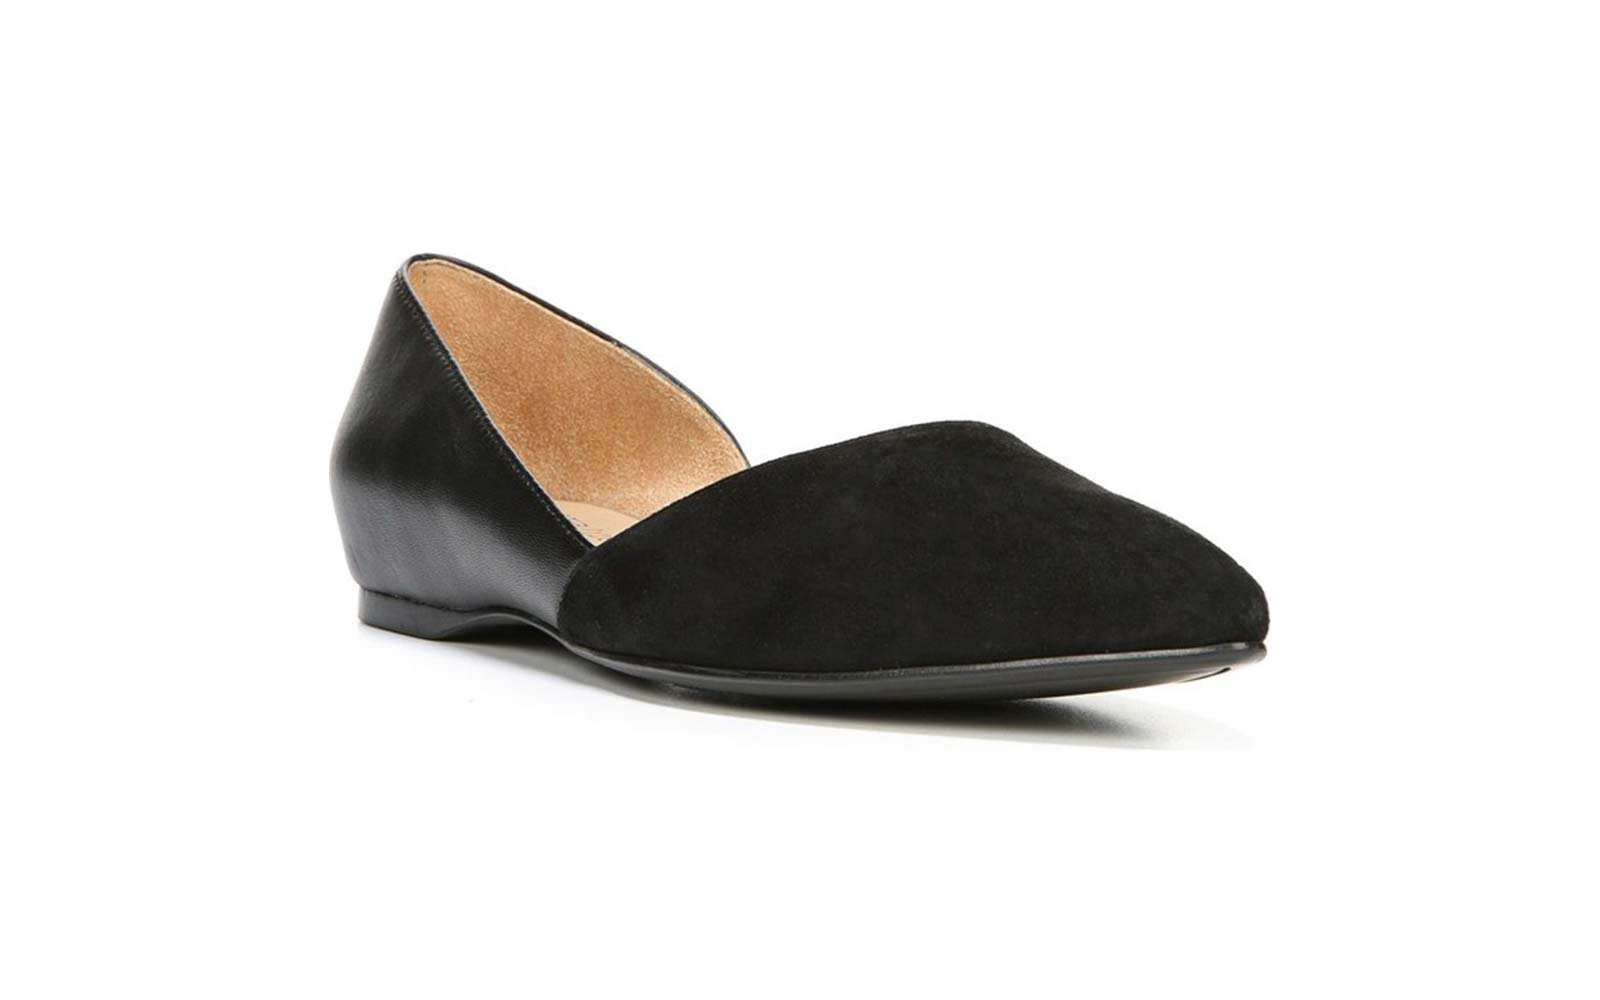 6f9a7c46a82 Naturalizer Samantha Half d Orsay Flat in Black Leather